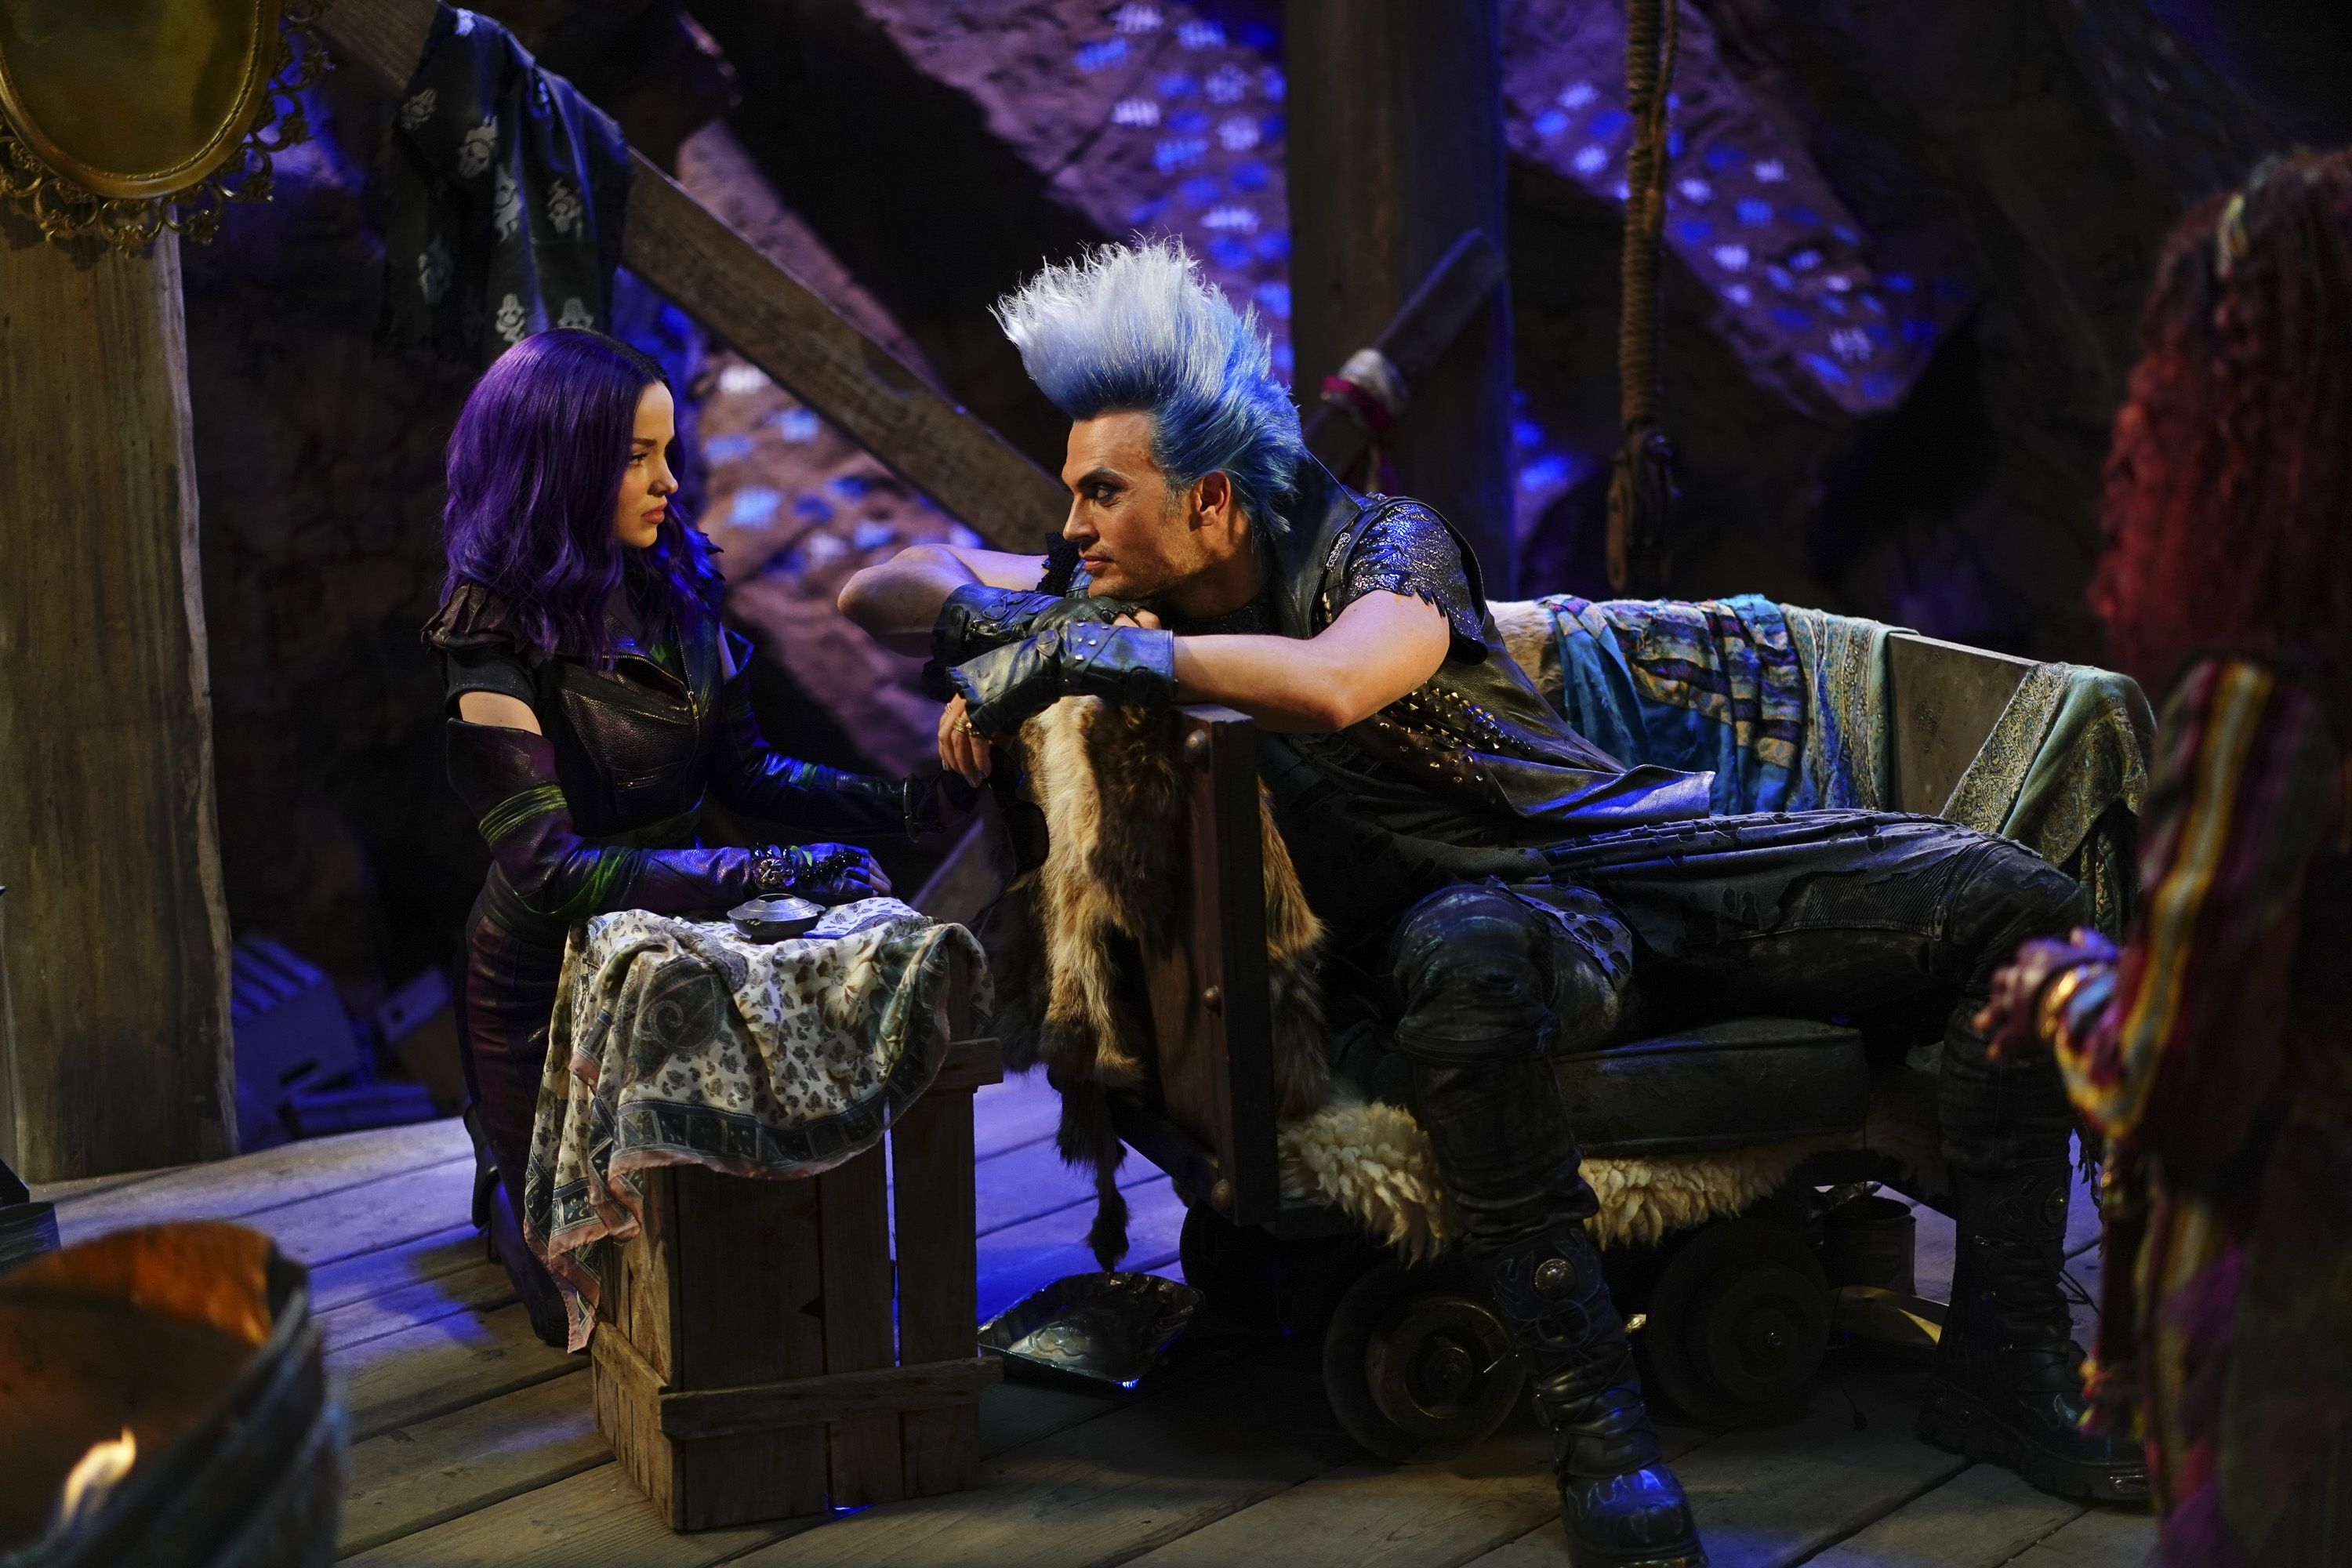 Early Look: Disney Channel Shares New Photos Ahead Of Descendants 3 Premiere #descendants3